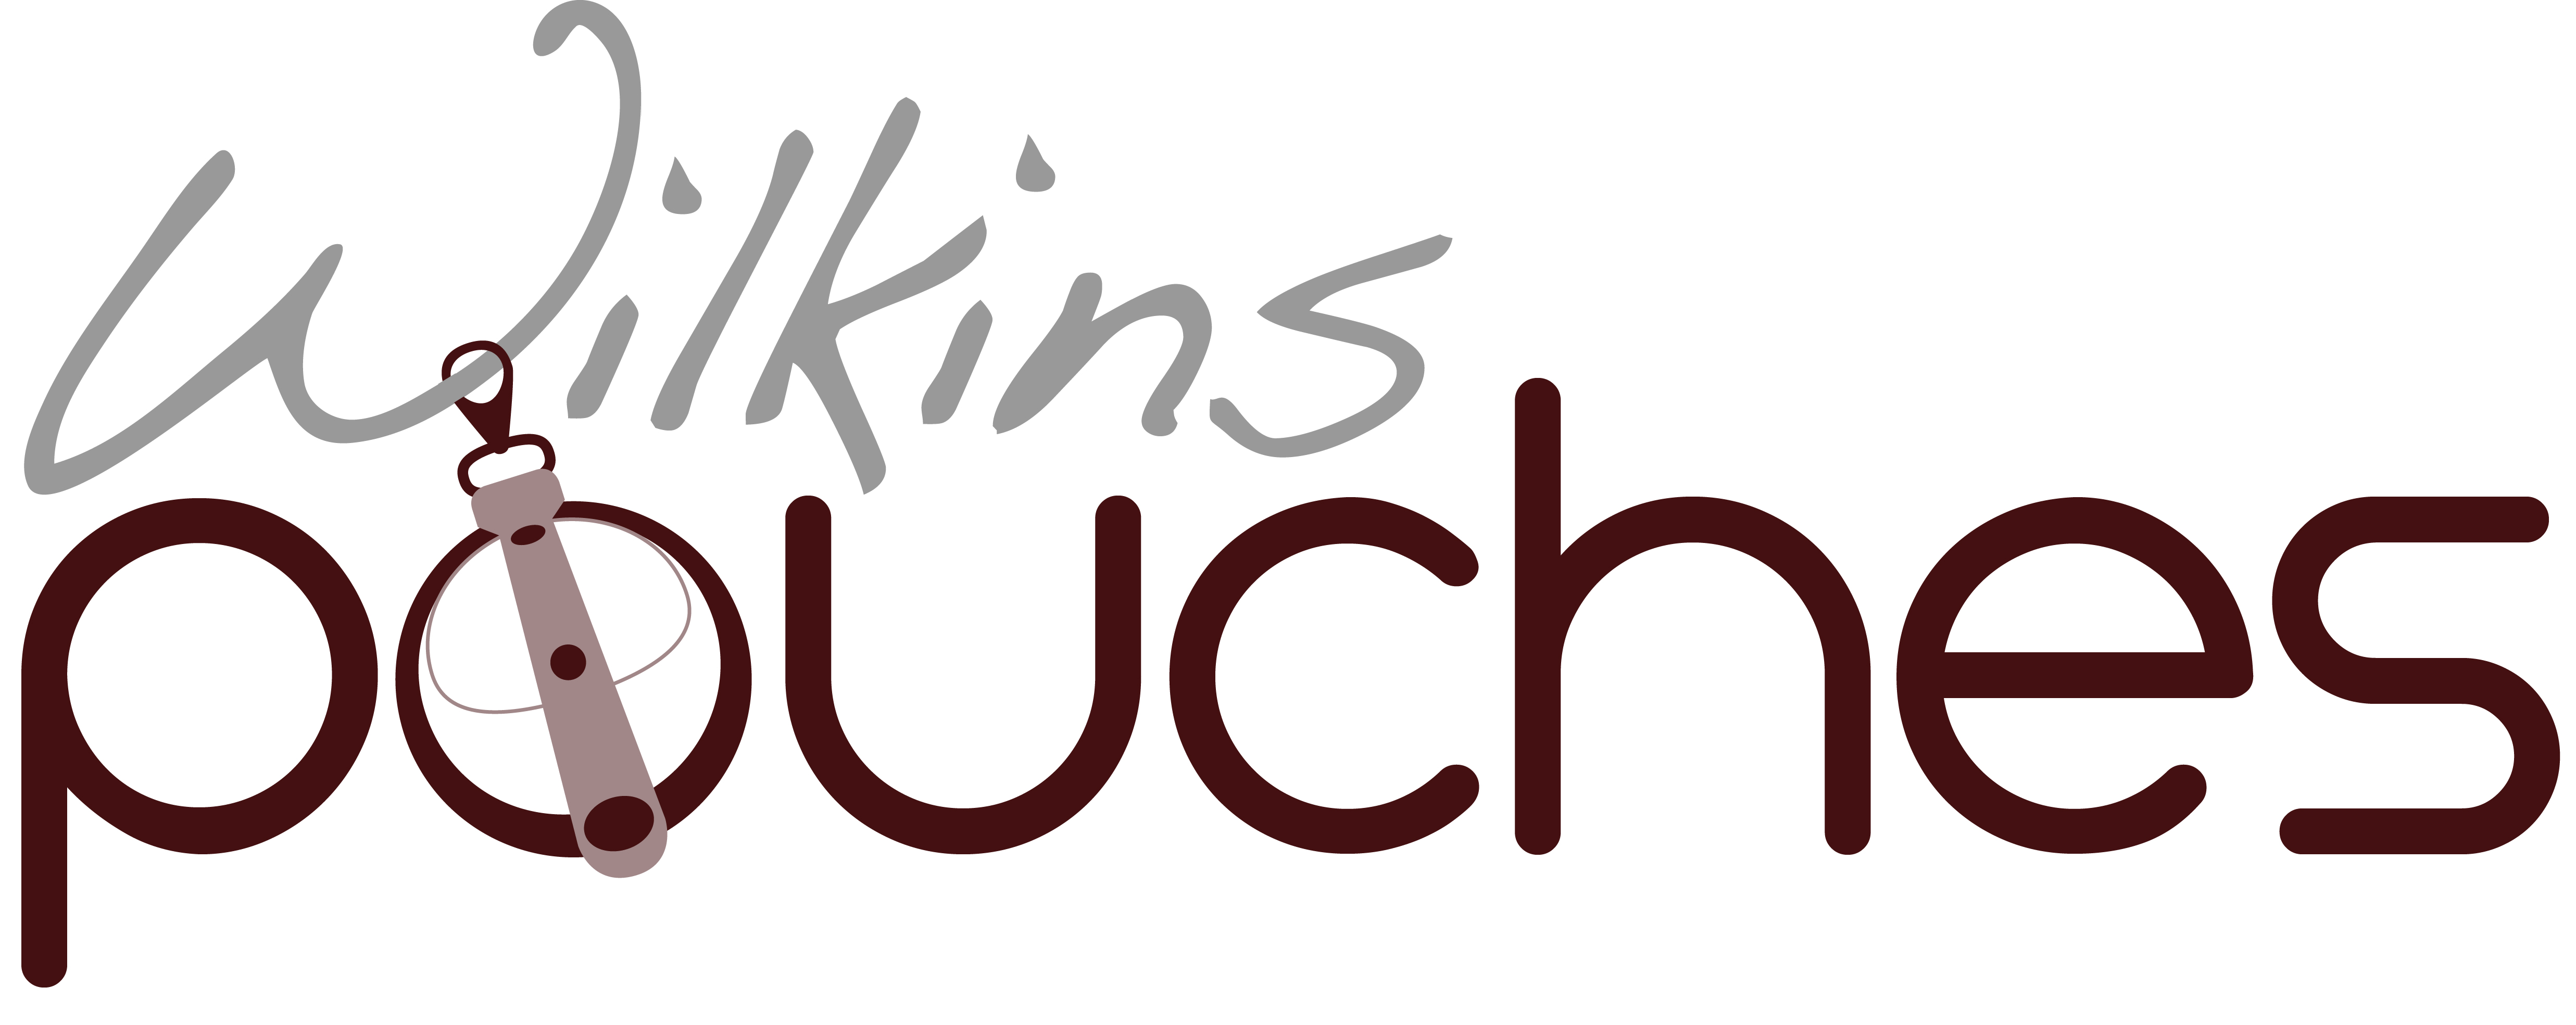 Download Wilkins Pouches logo